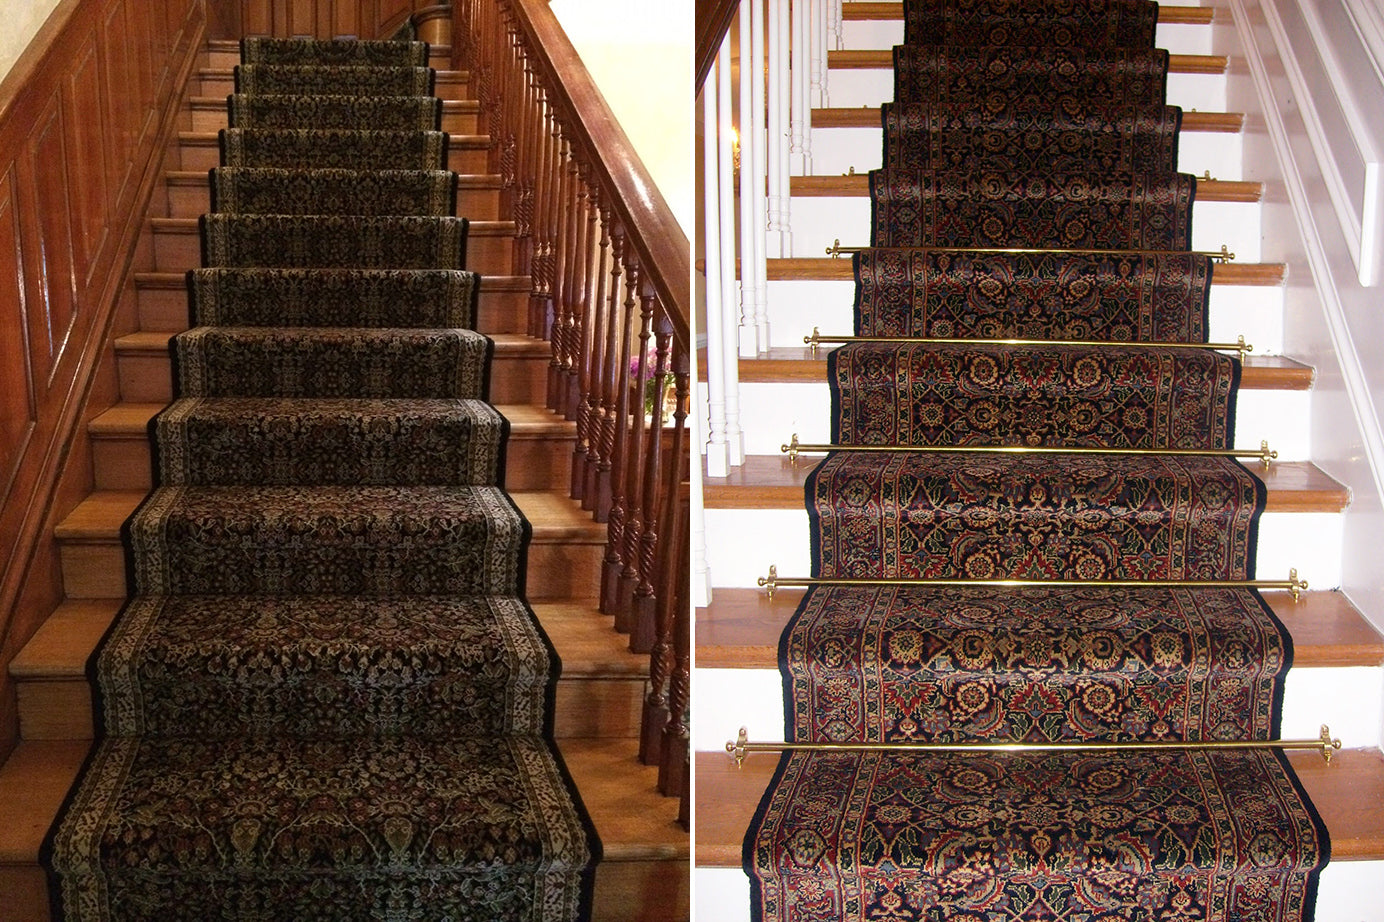 Stair runners with and without stair rods